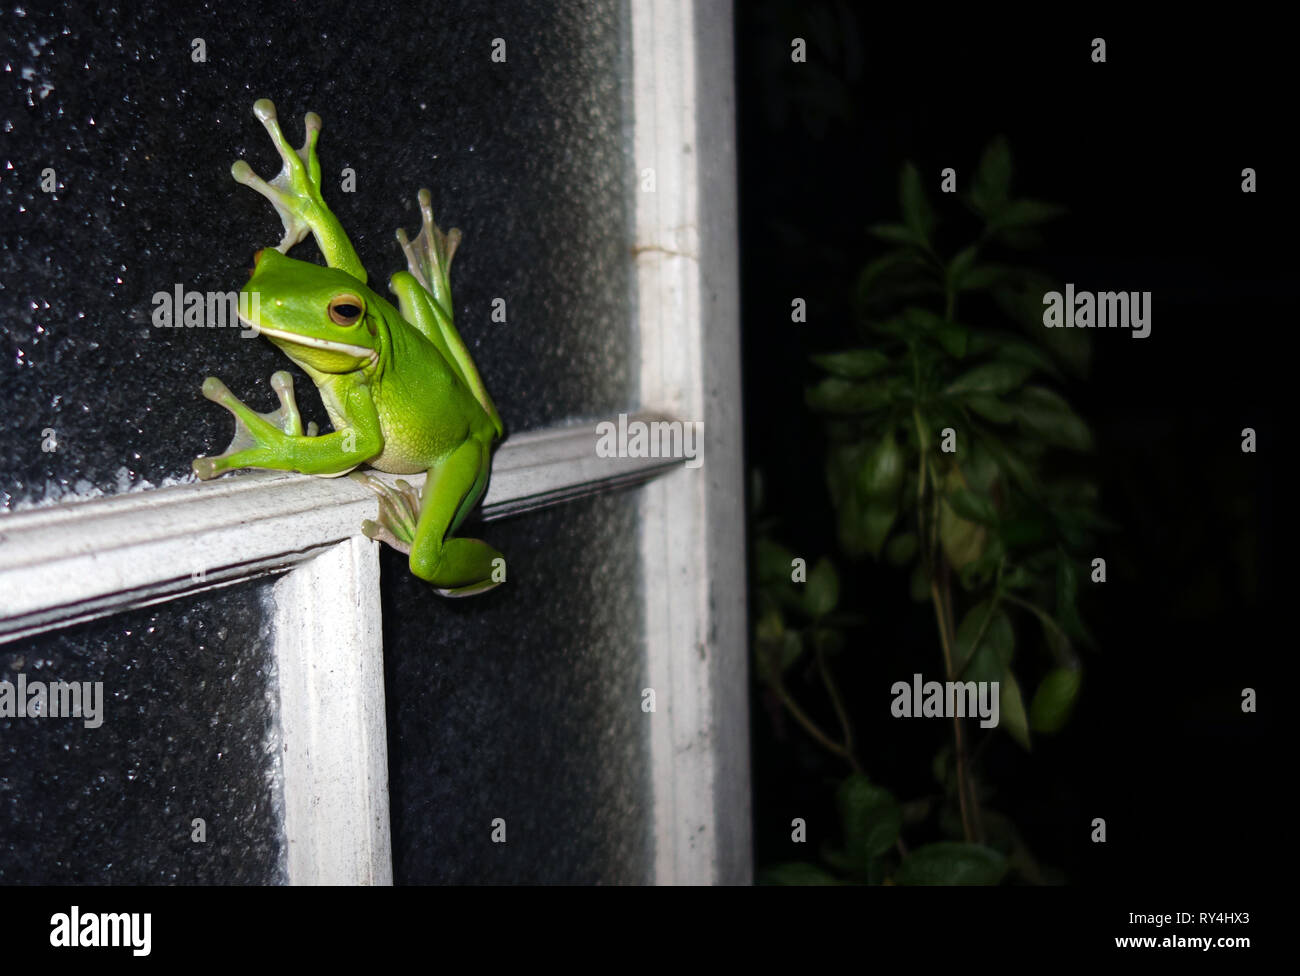 White-lipped green treefrog (Litoria infrafrenata) on kitchen window, wet season in Cairns, Queensland, Australia. No PR Stock Photo